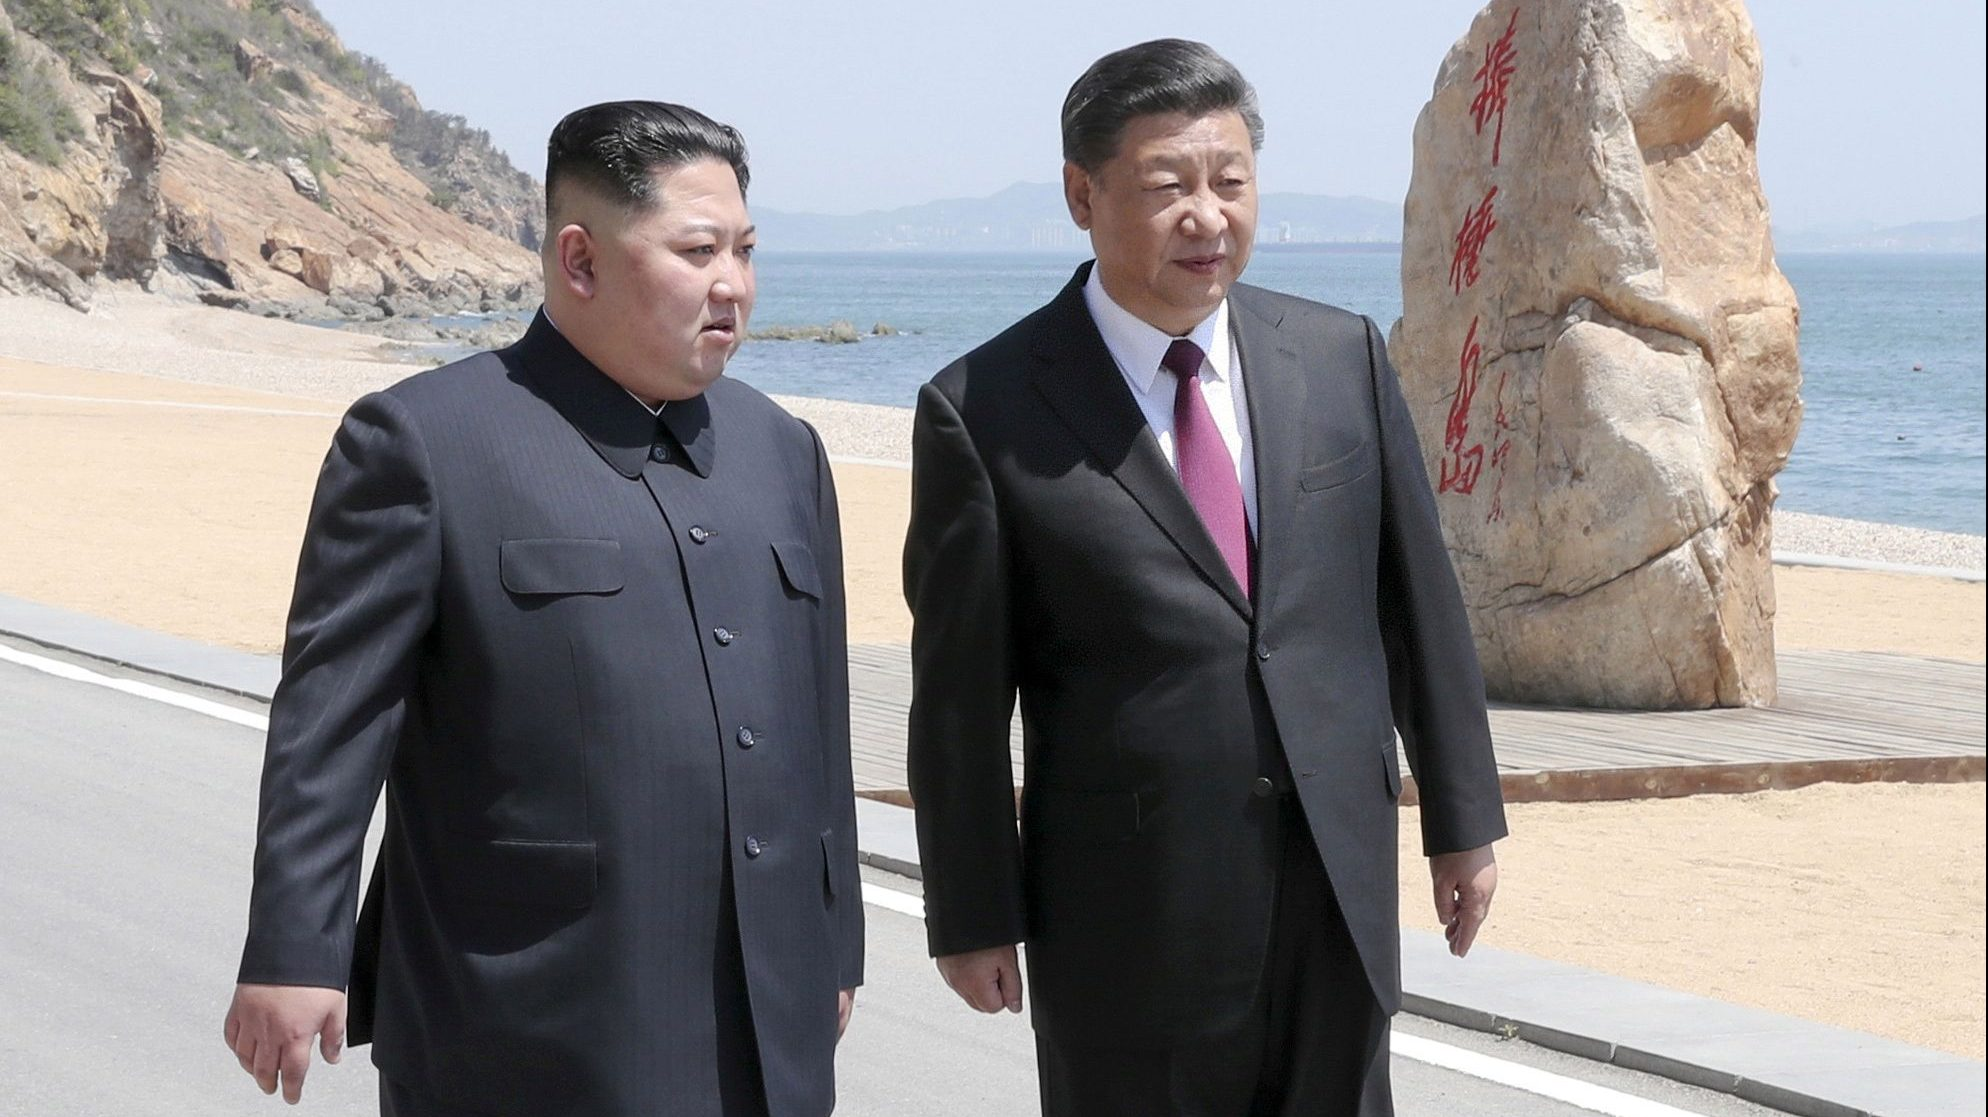 Chinese President Xi Jinping and North Korean leader Kim Jong Un meet in Dalian, Liaoning province, China in this picture released by Xinhua on May 8, 2018.